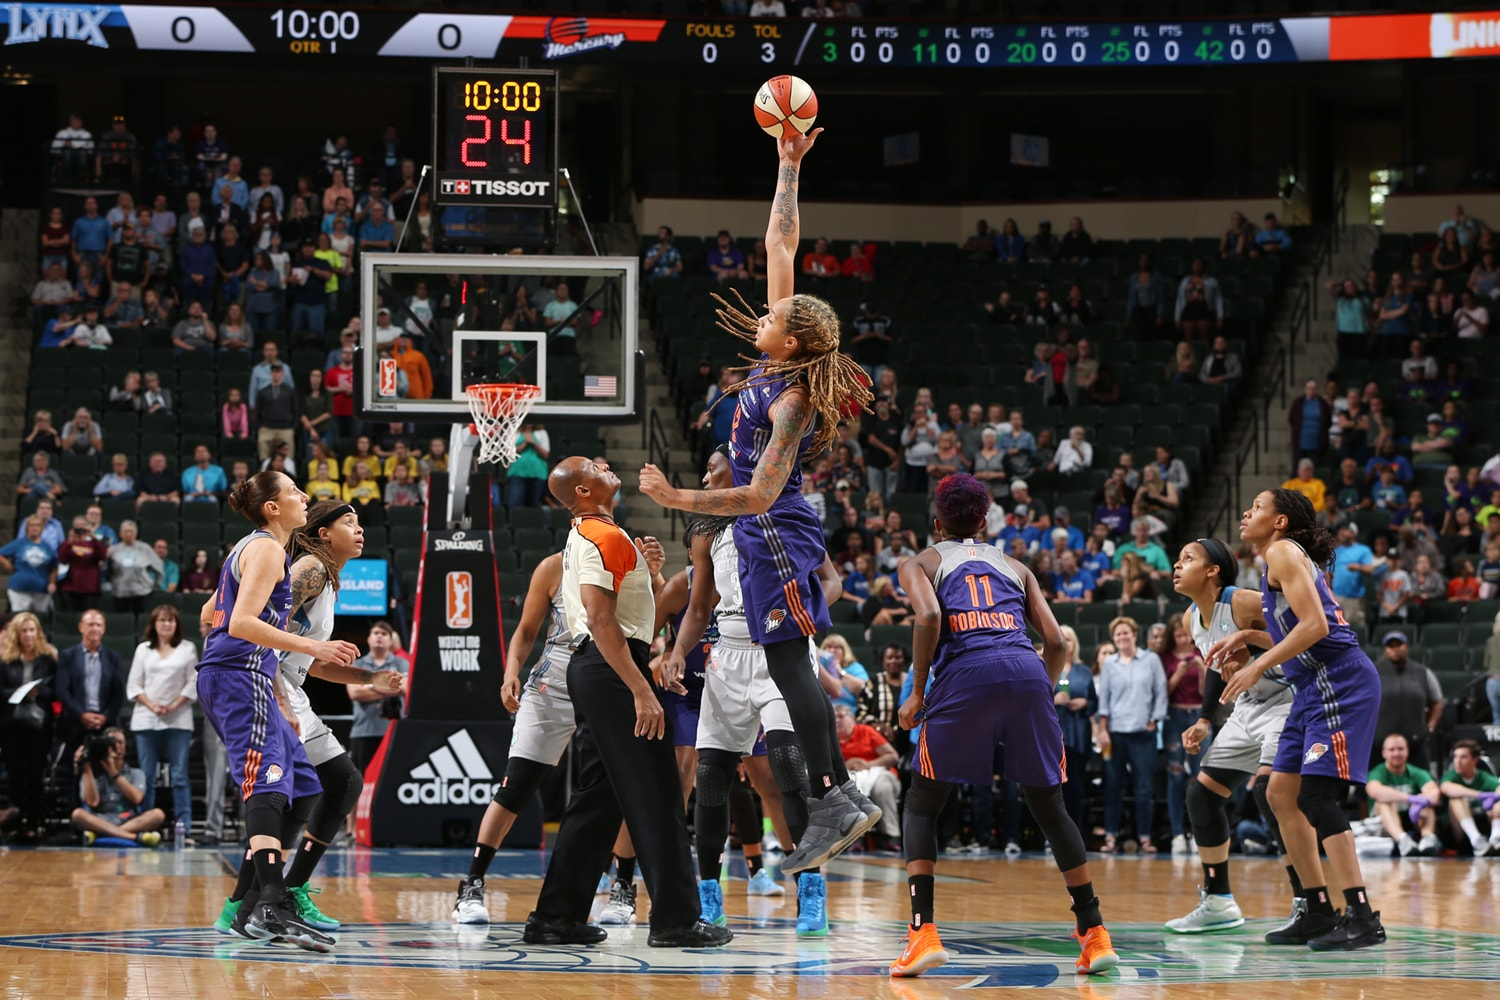 Brittney Griner jumps center to start game in Minnesota